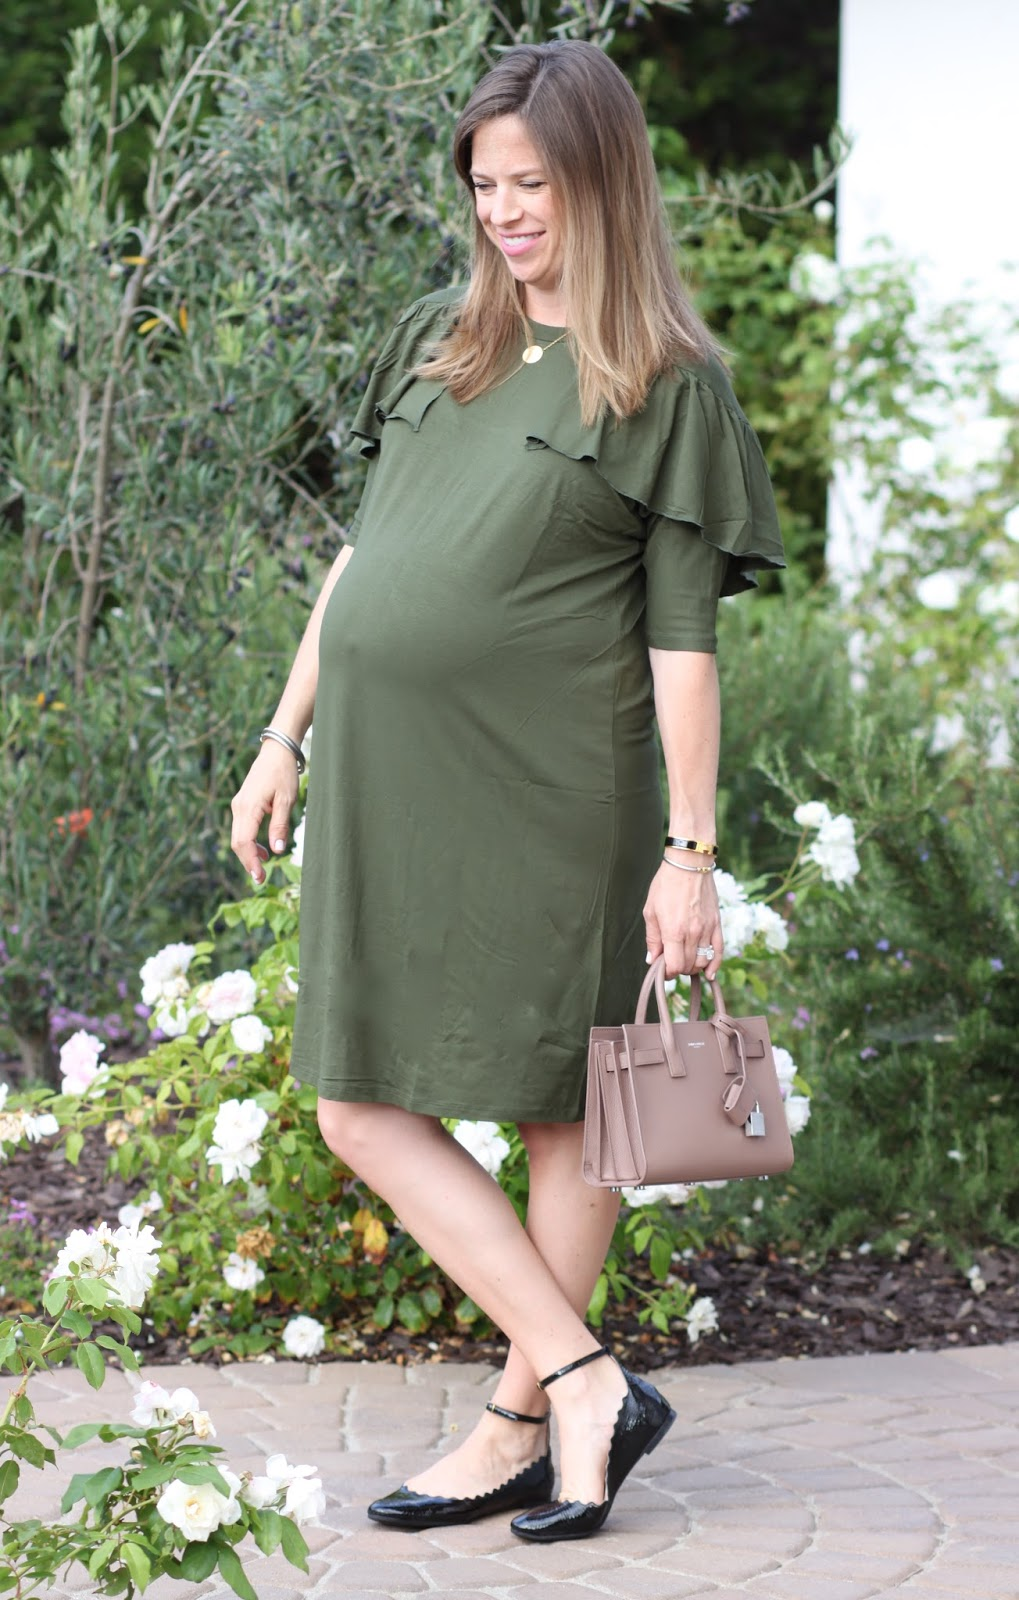 saint laurent bag chloe shoes maternity dress